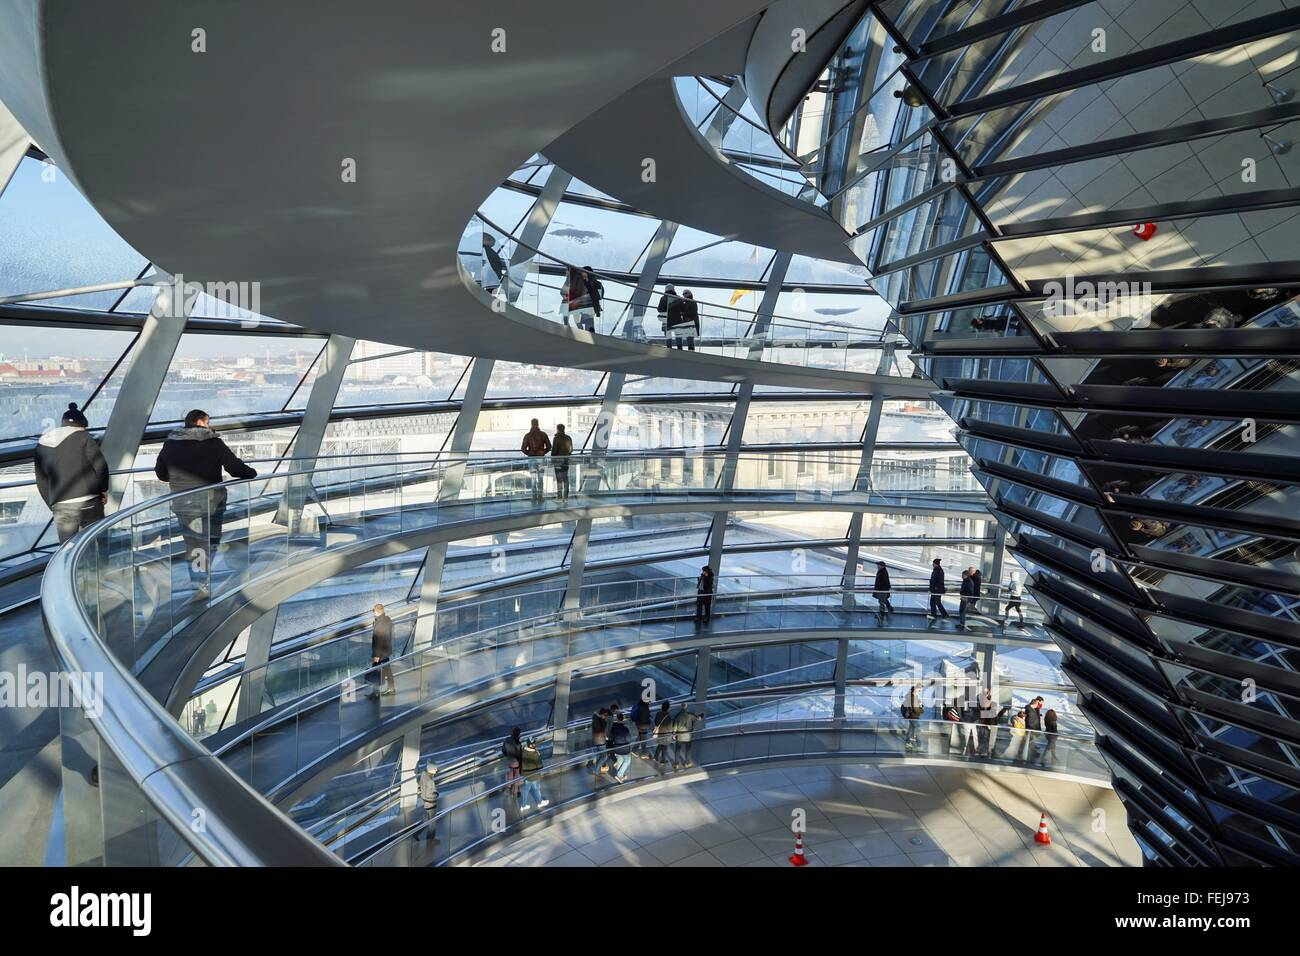 Germany: Inside view of the Reichstag dome. Photo from 22. January 2016. Stock Photo